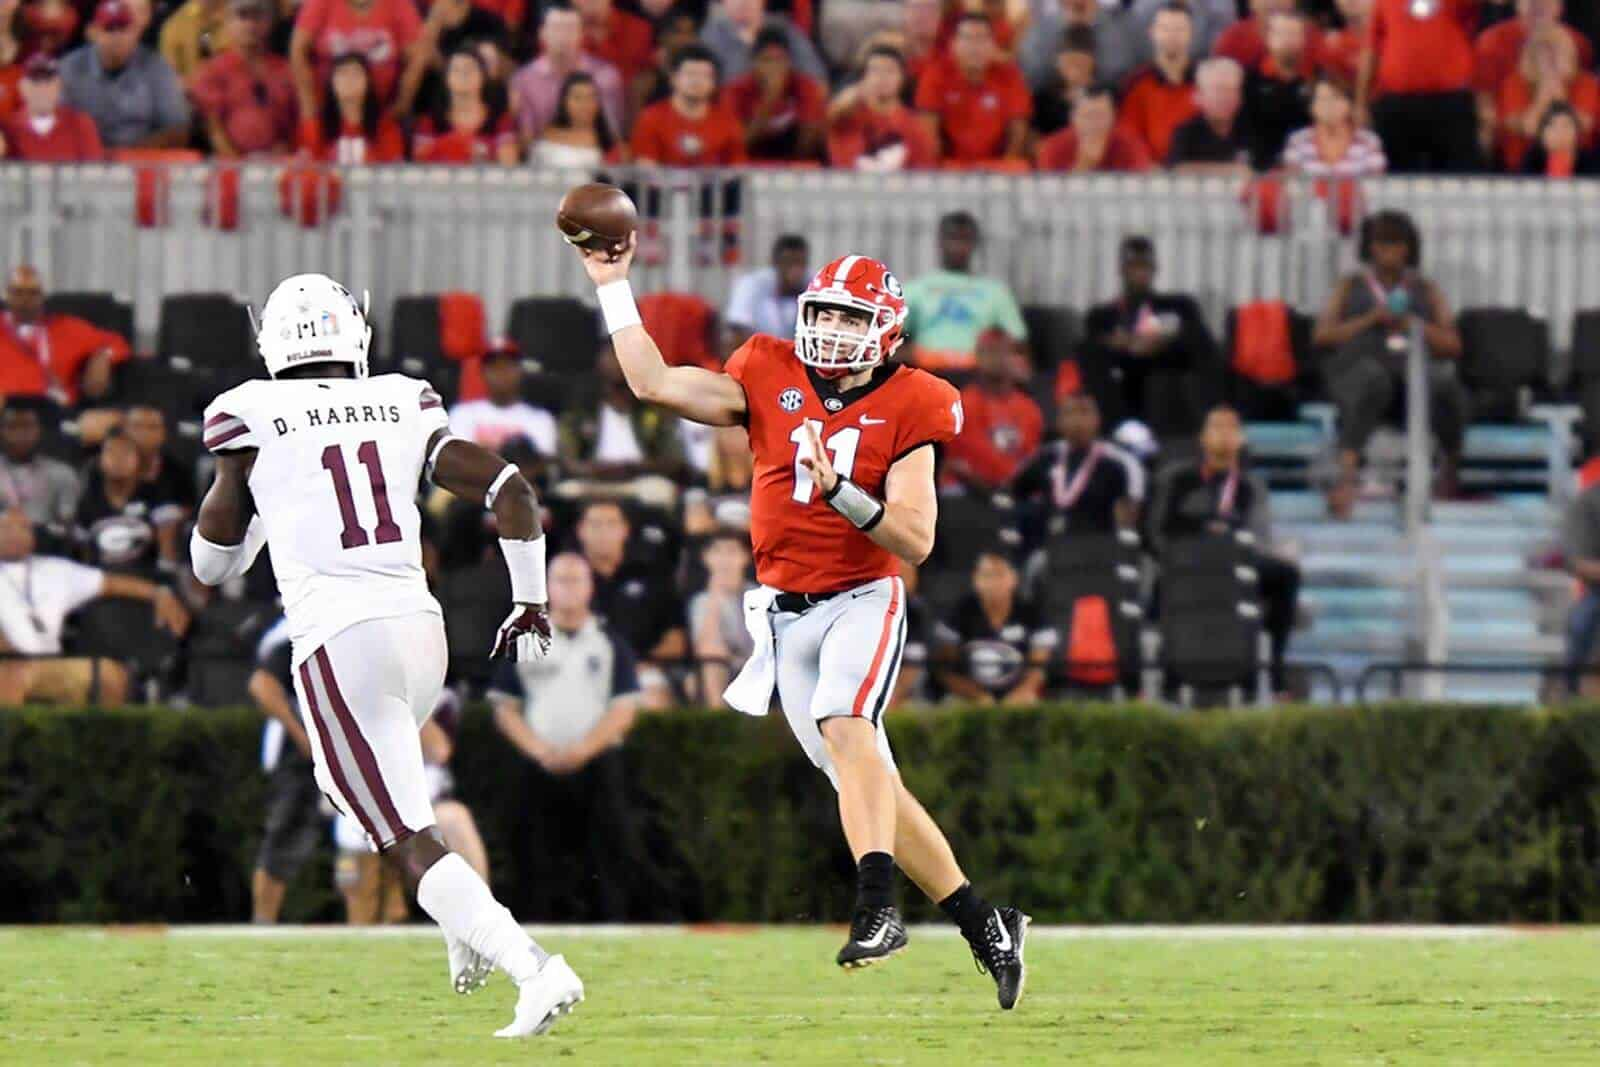 Jacob Eason is 'closer' to playing, Georgia coach Kirby Smart says